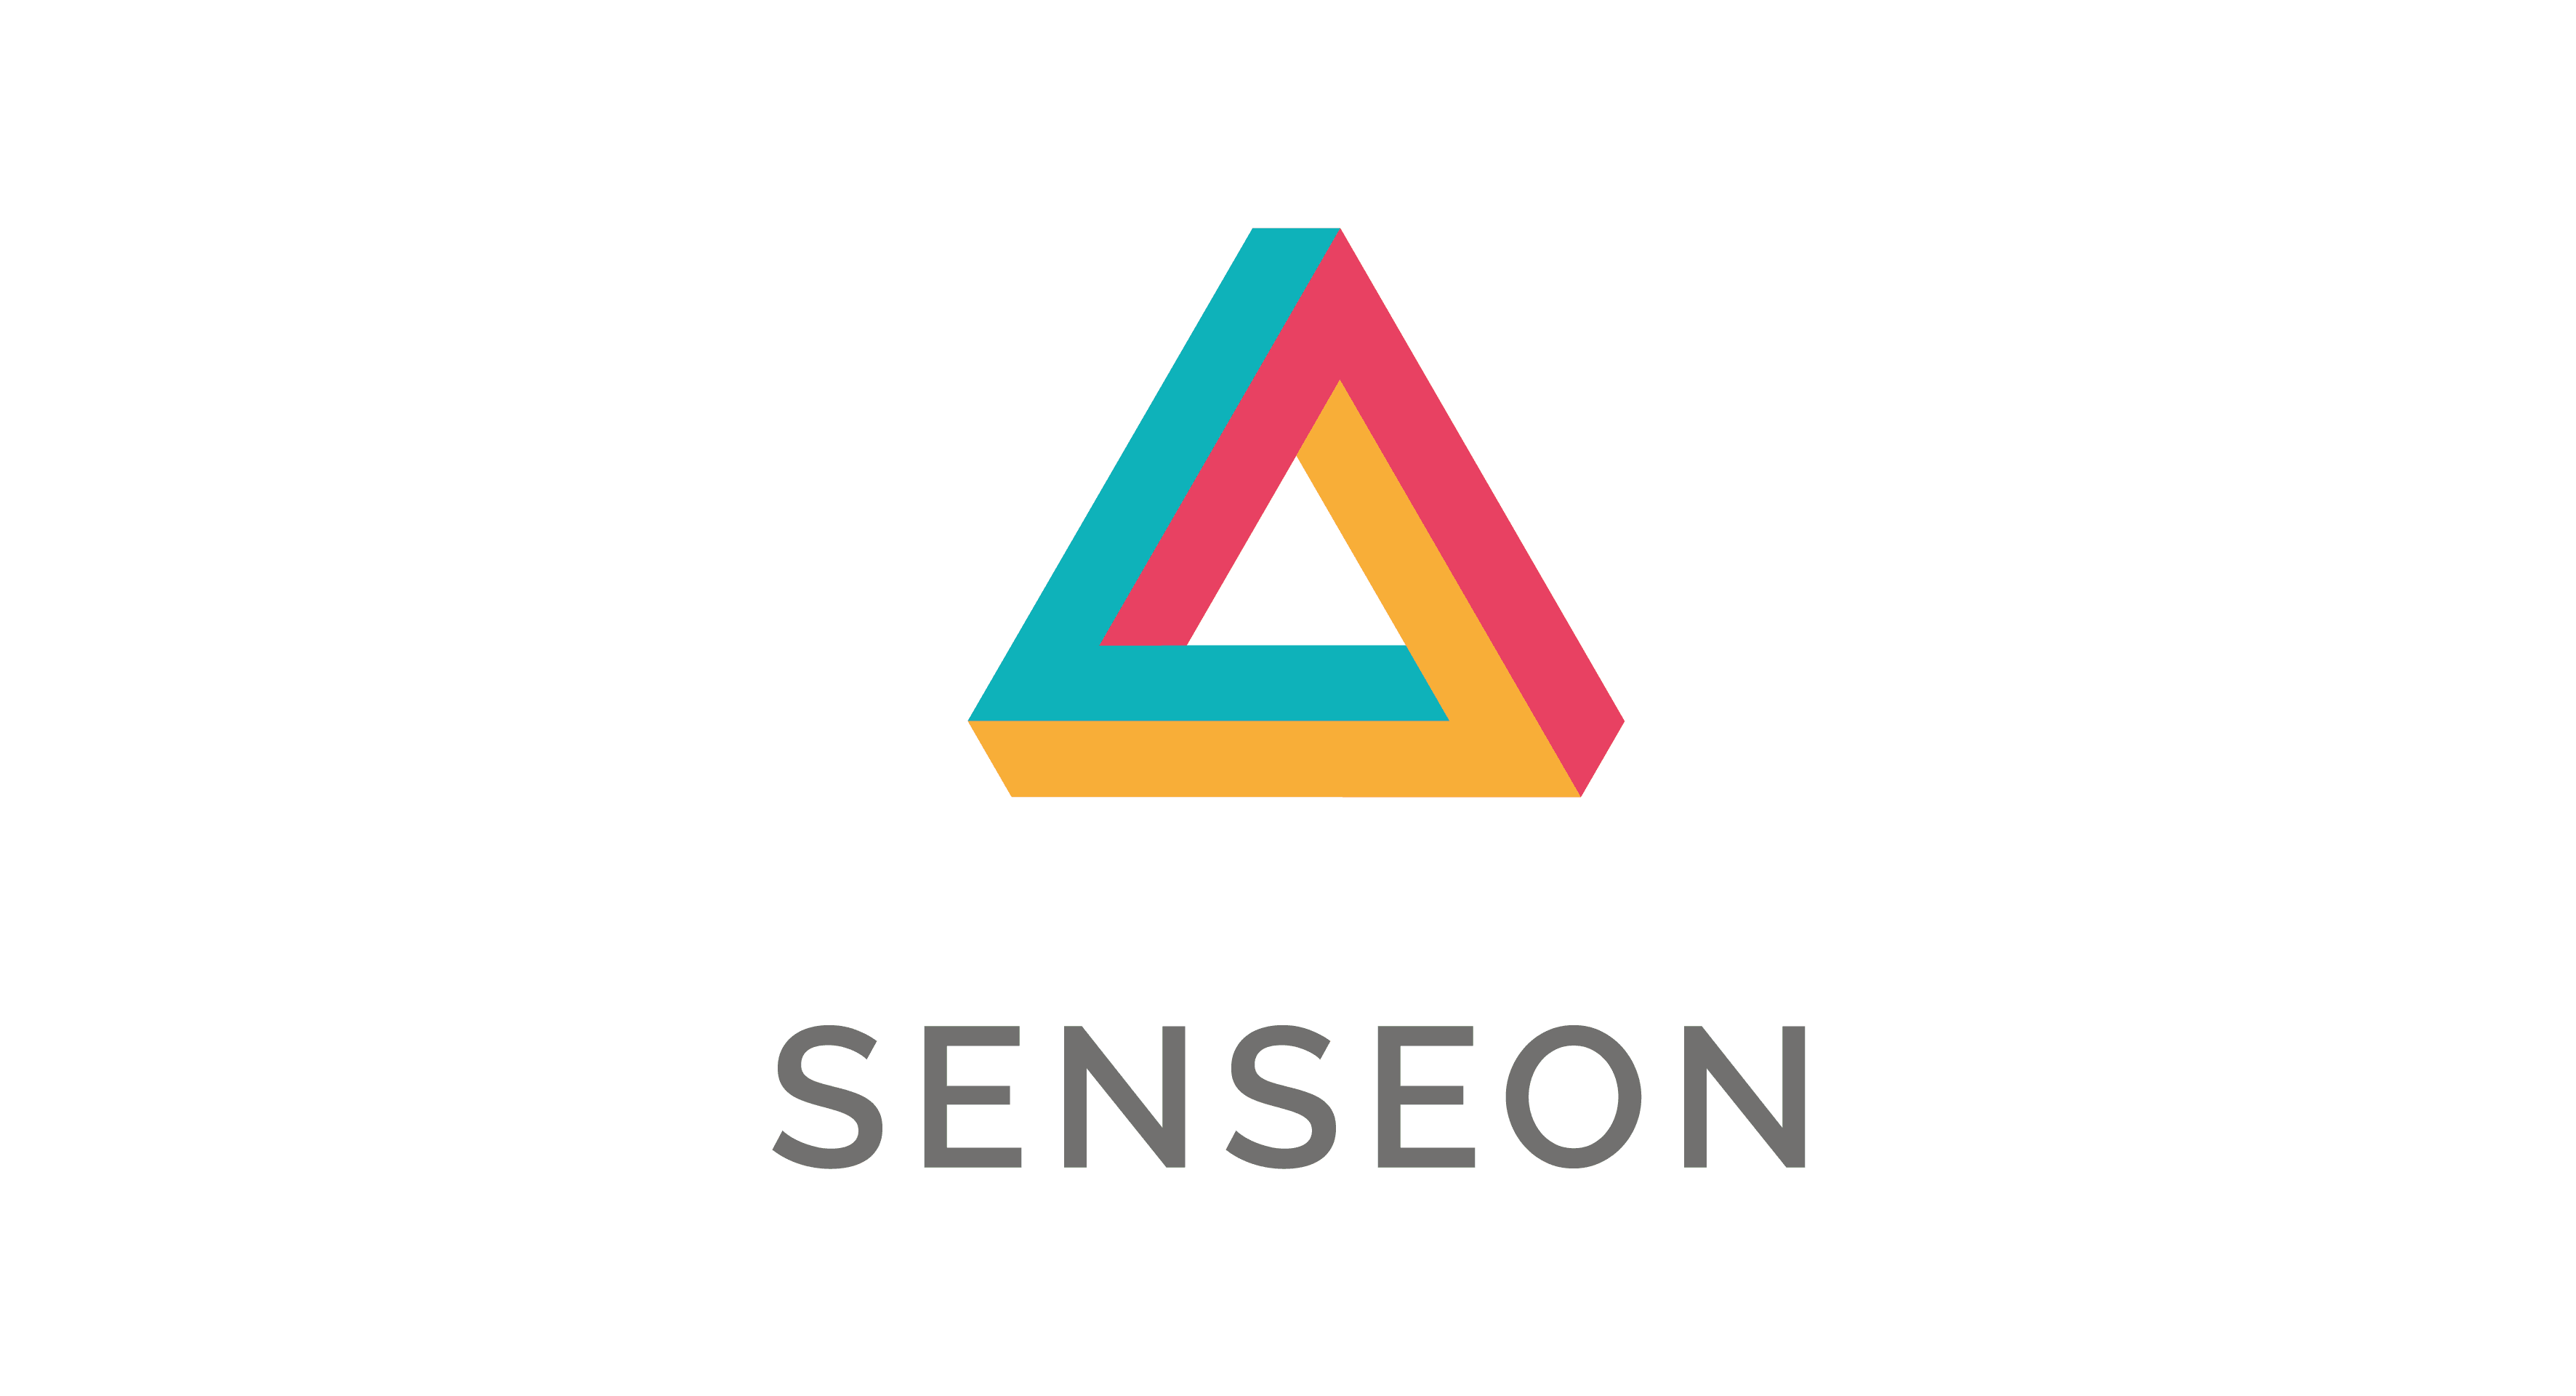 """SenseOn Launches New """"On a Mission"""" Campaign, as Business Announced Technology Pioneer by World Economic Forum"""